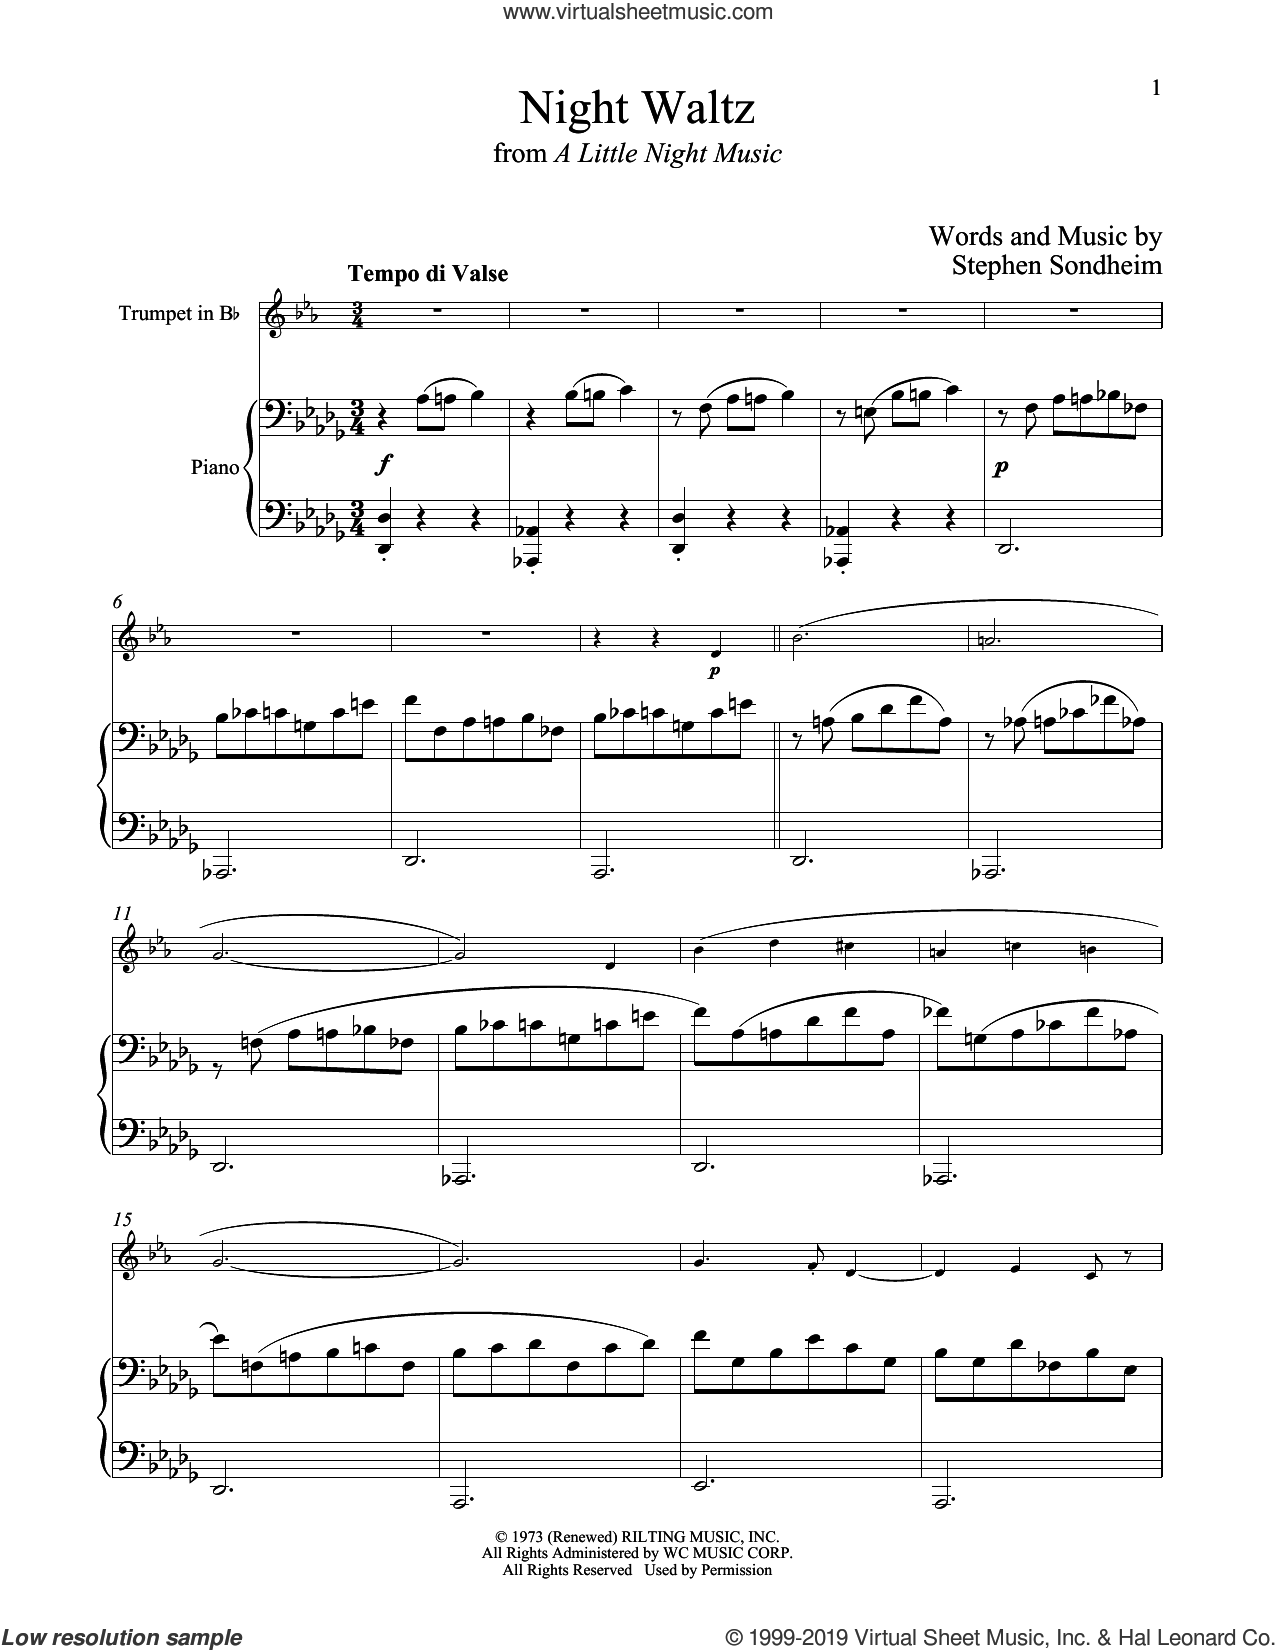 Night Waltz (from A Little Night Music) sheet music for trumpet and piano by Stephen Sondheim, intermediate skill level